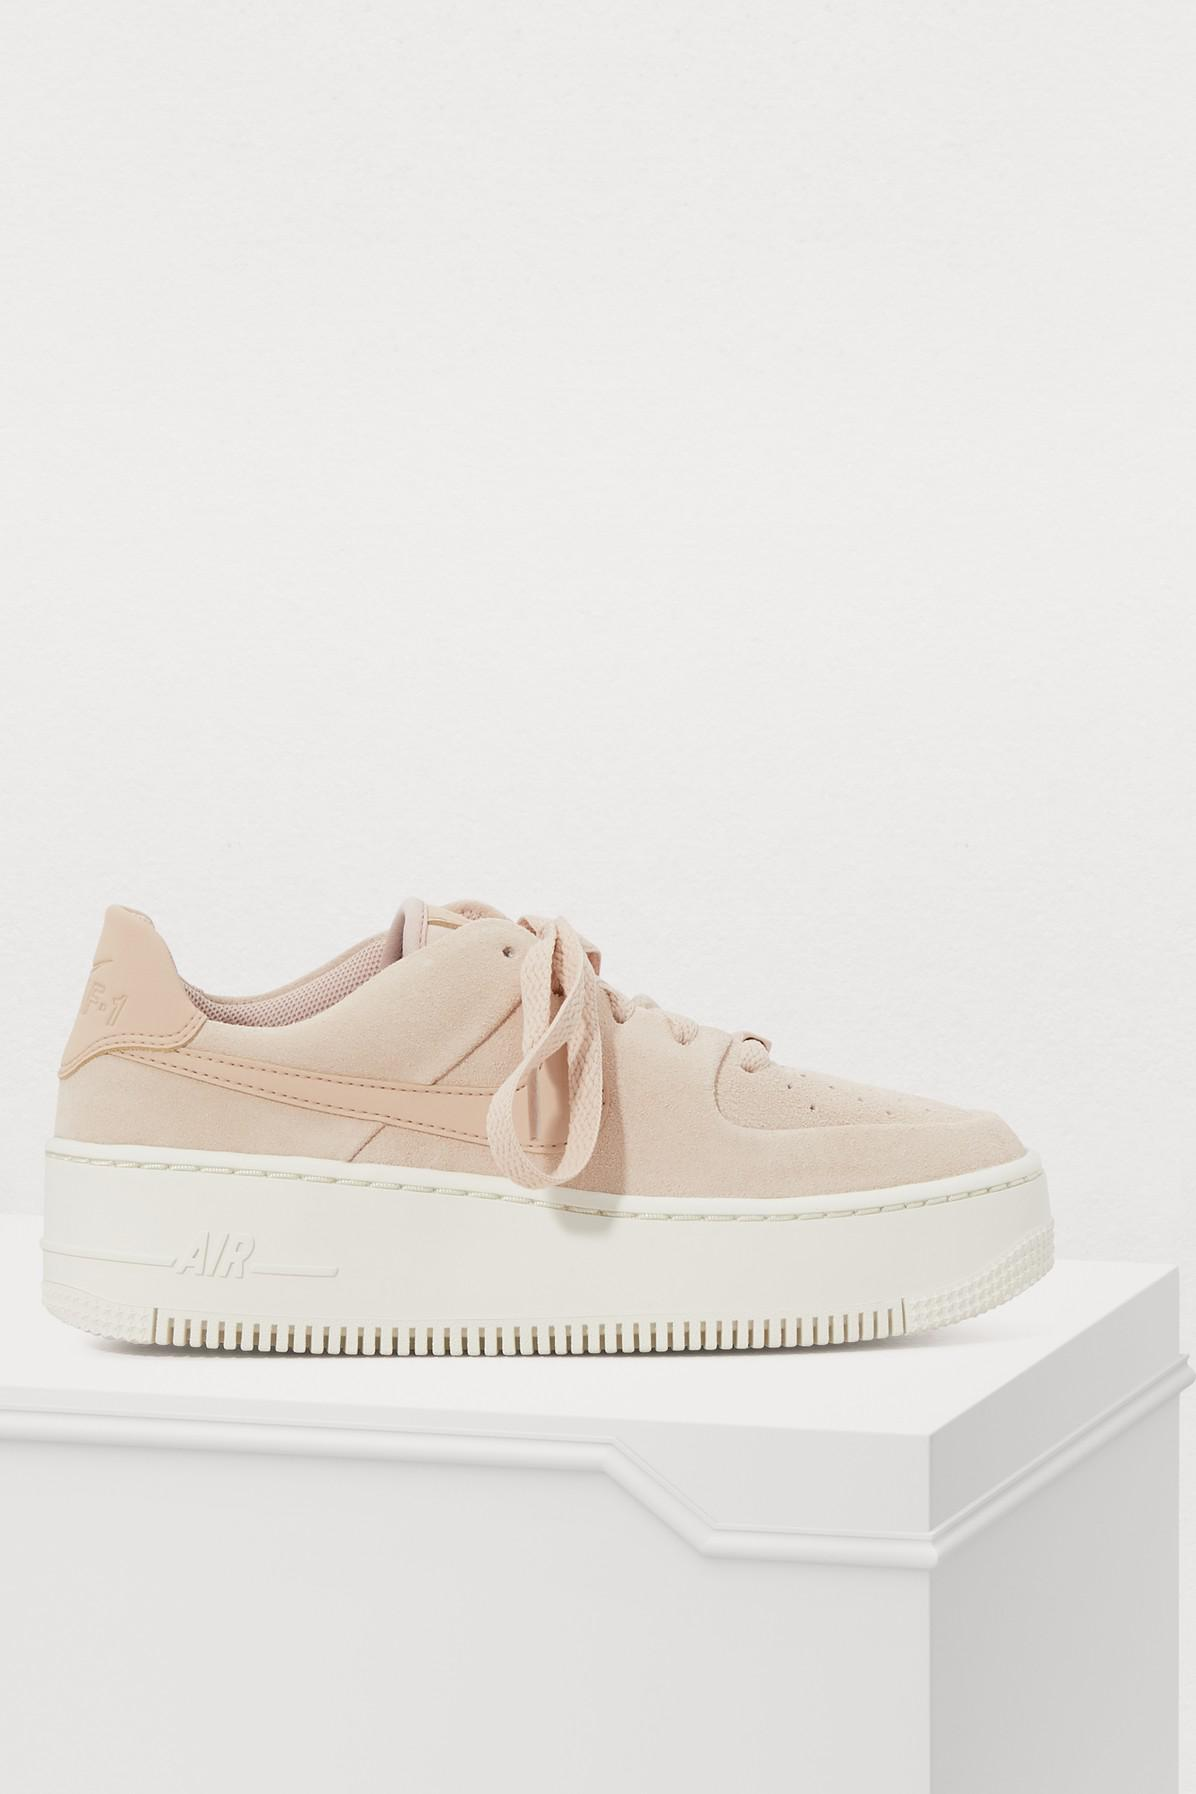 Nike Leather Air Force 1 Sage Low Sneakers in Particle Beige ...